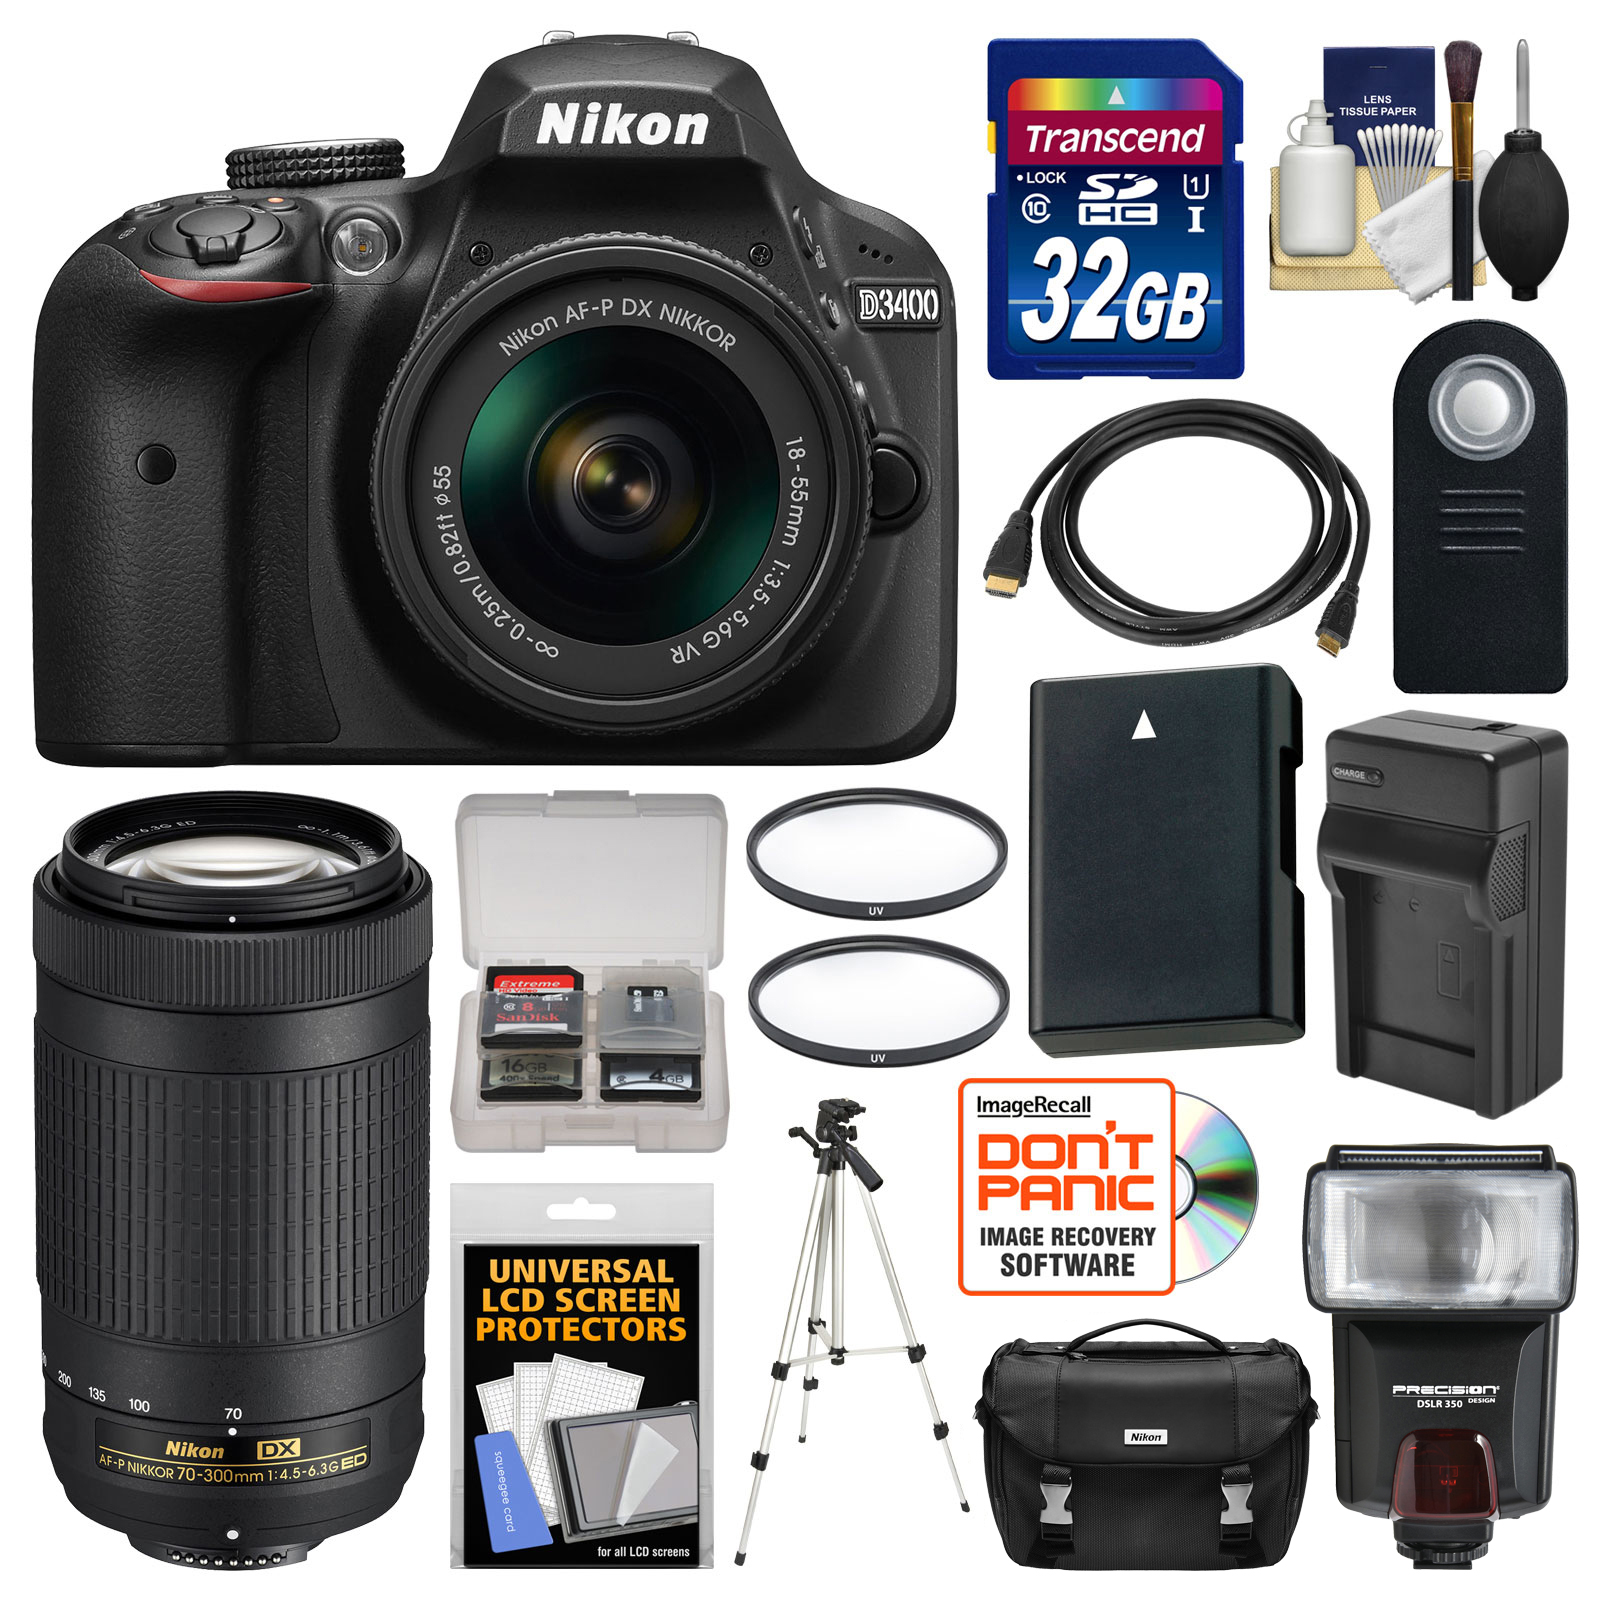 Nikon D3400 Digital SLR Camera & 18-55mm VR & 70-300mm DX AF-P Lenses with 32GB Card + Case + Flash + Battery & Charger + Tripod + Filters + Kit